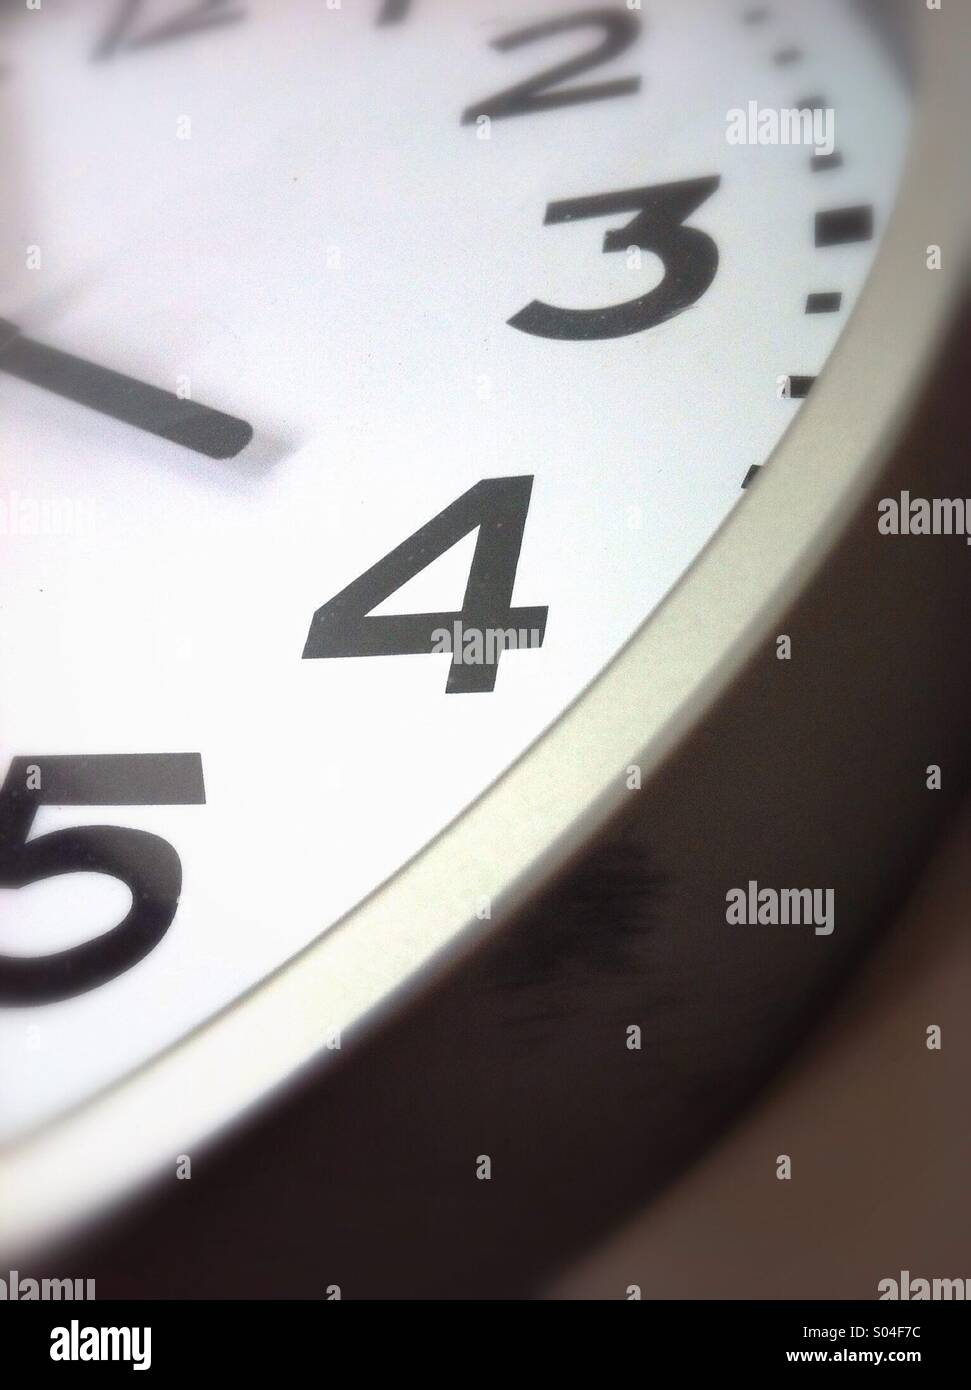 Number 4 on clock face. - Stock Image